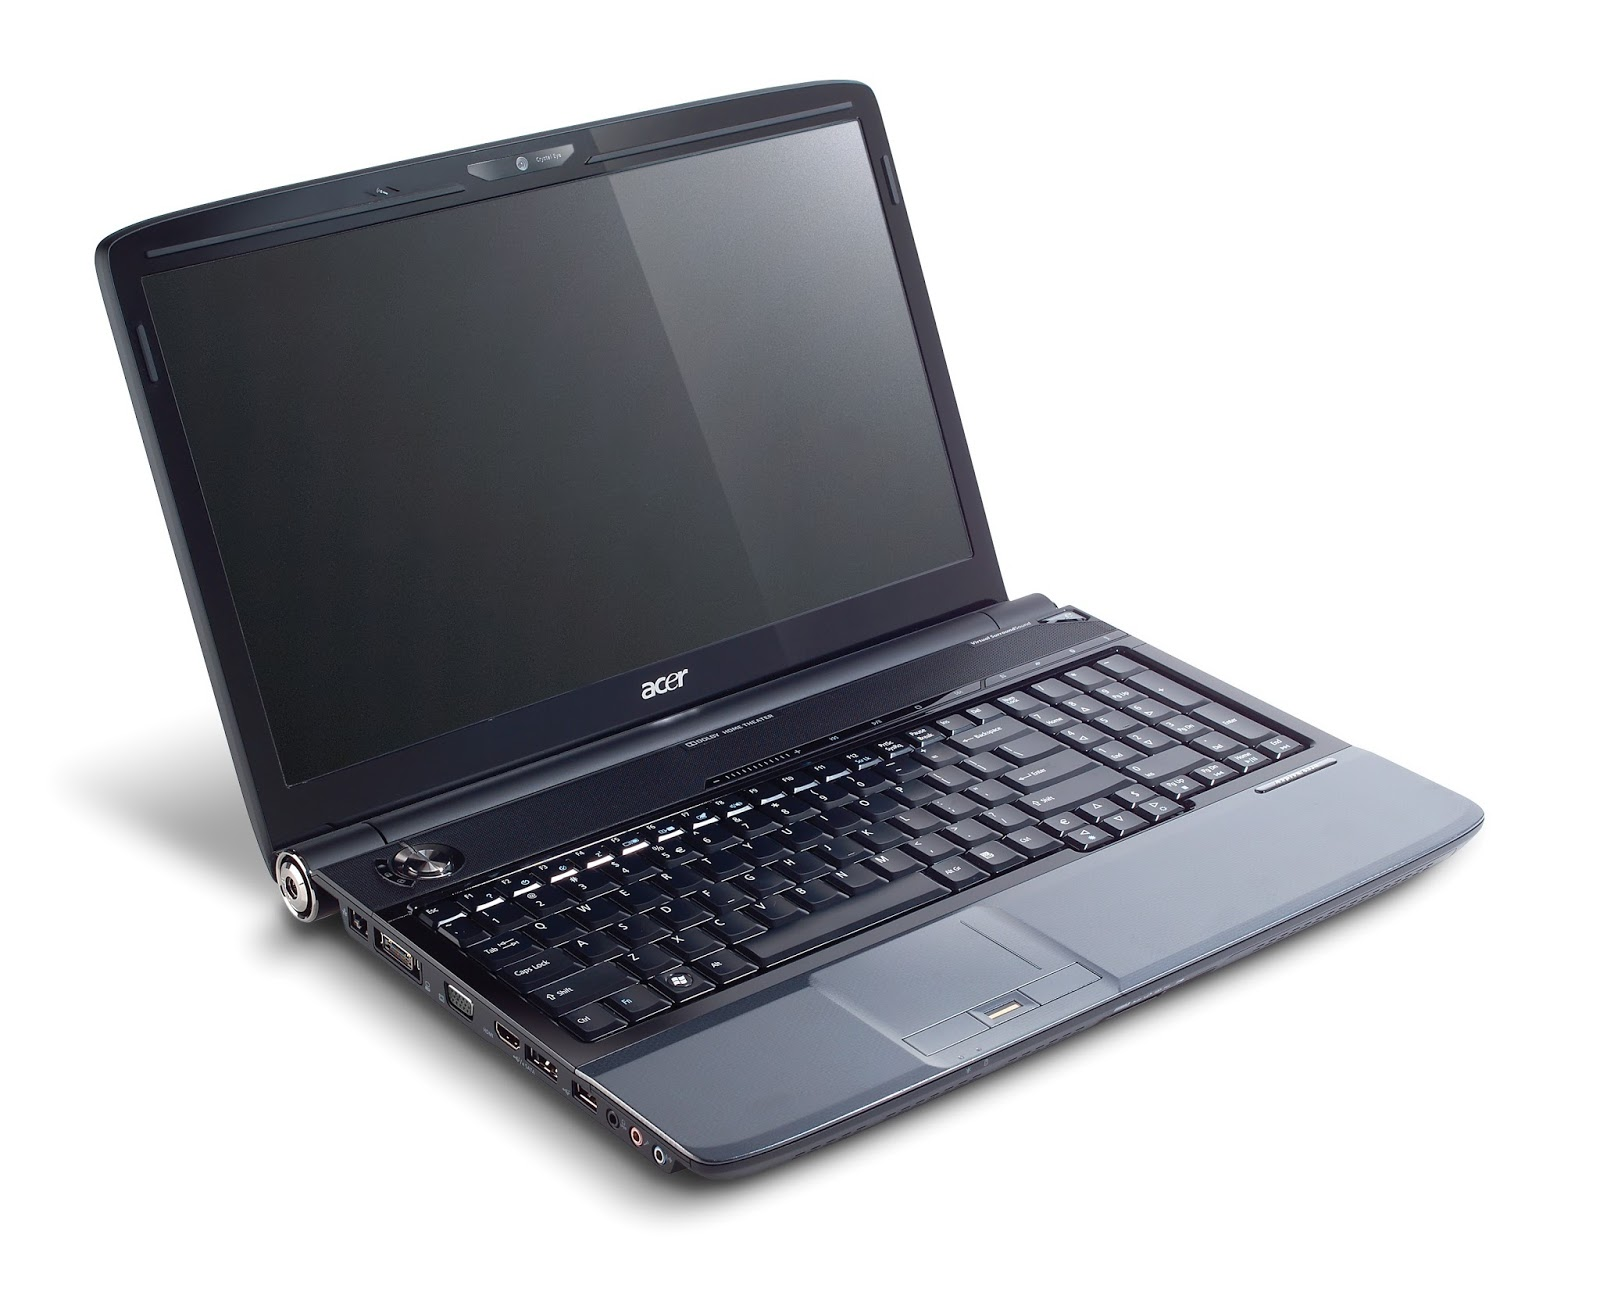 ACER ASPIRE 7530 SATA AHCI DRIVER WINDOWS 7